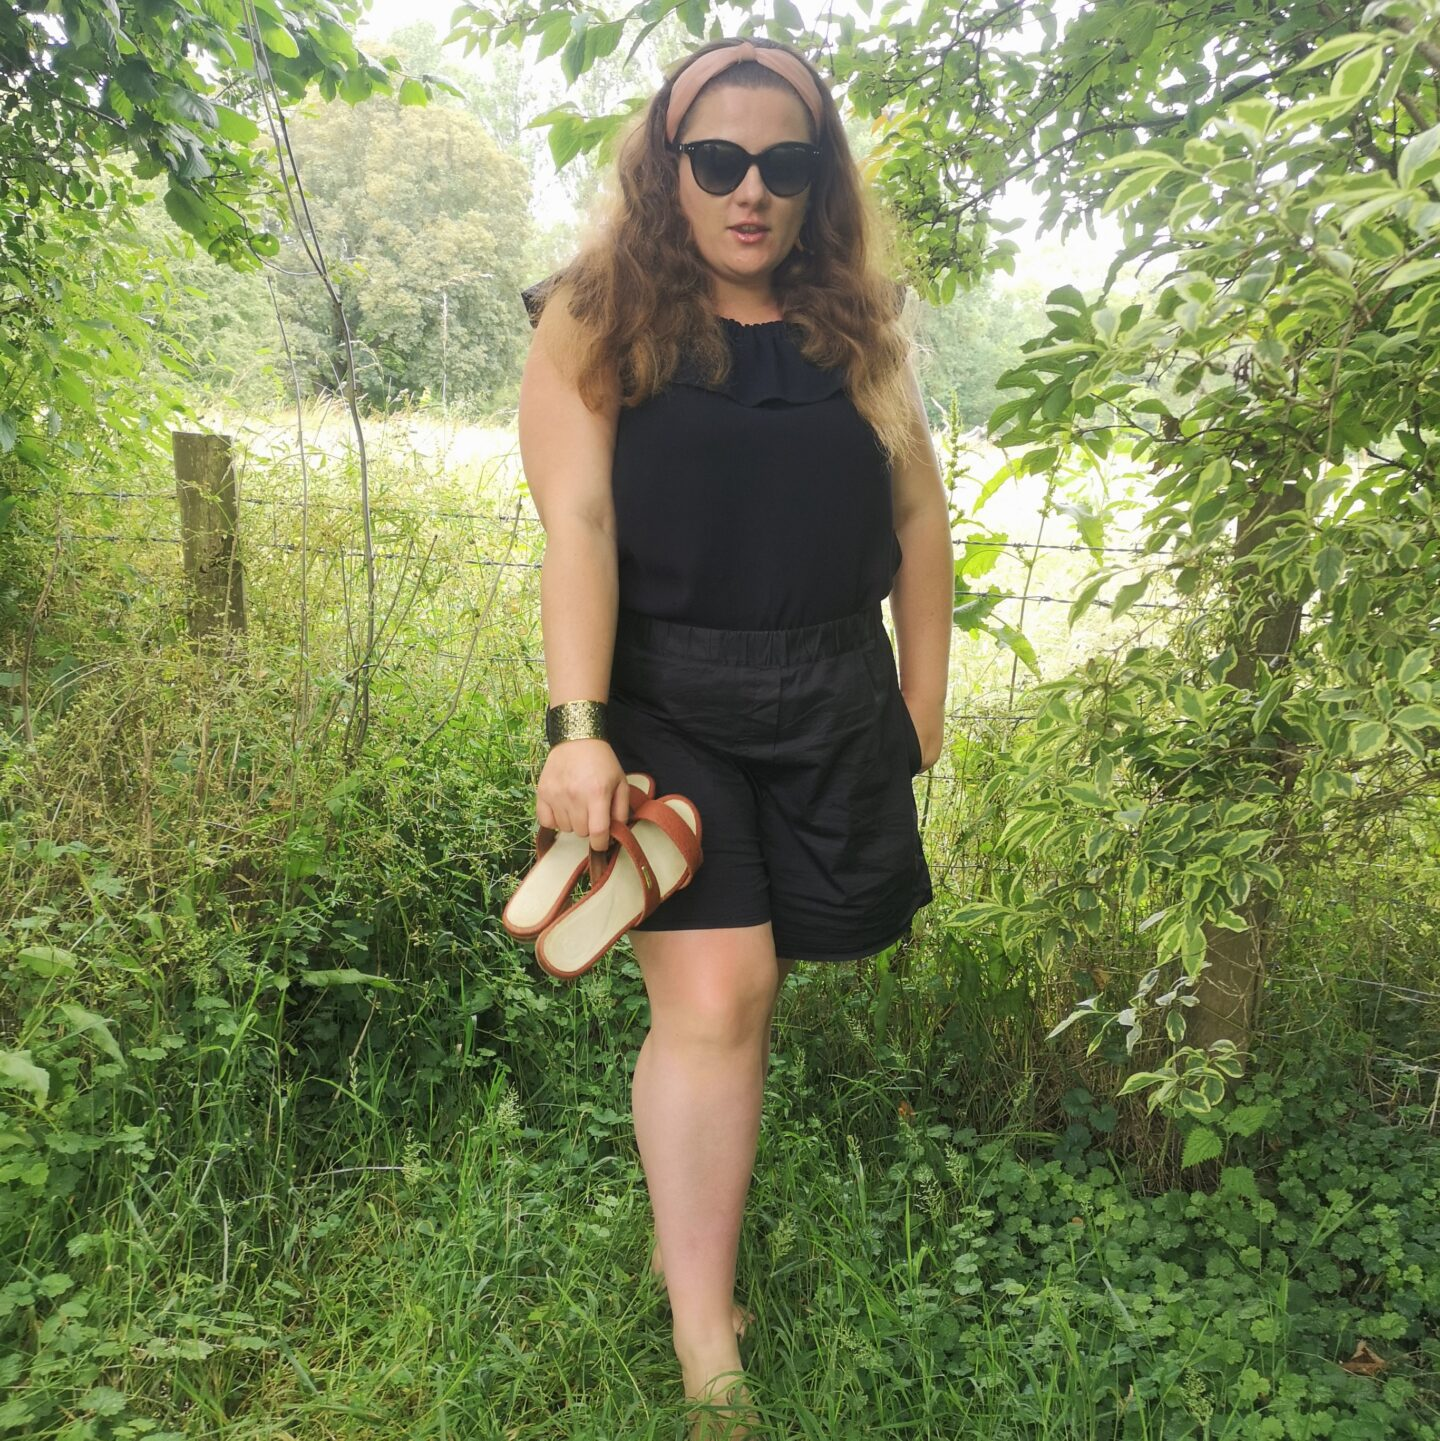 1 People SS21, Danish Brand, Luxury Sustainable Fashion, SS21 Collection, Eco Friendly, Sandals, Summer Giveaway, Fashionista, Mama Fashion, Win, Competition, Sustainable Fashion, Win, the Frenchie Mummy